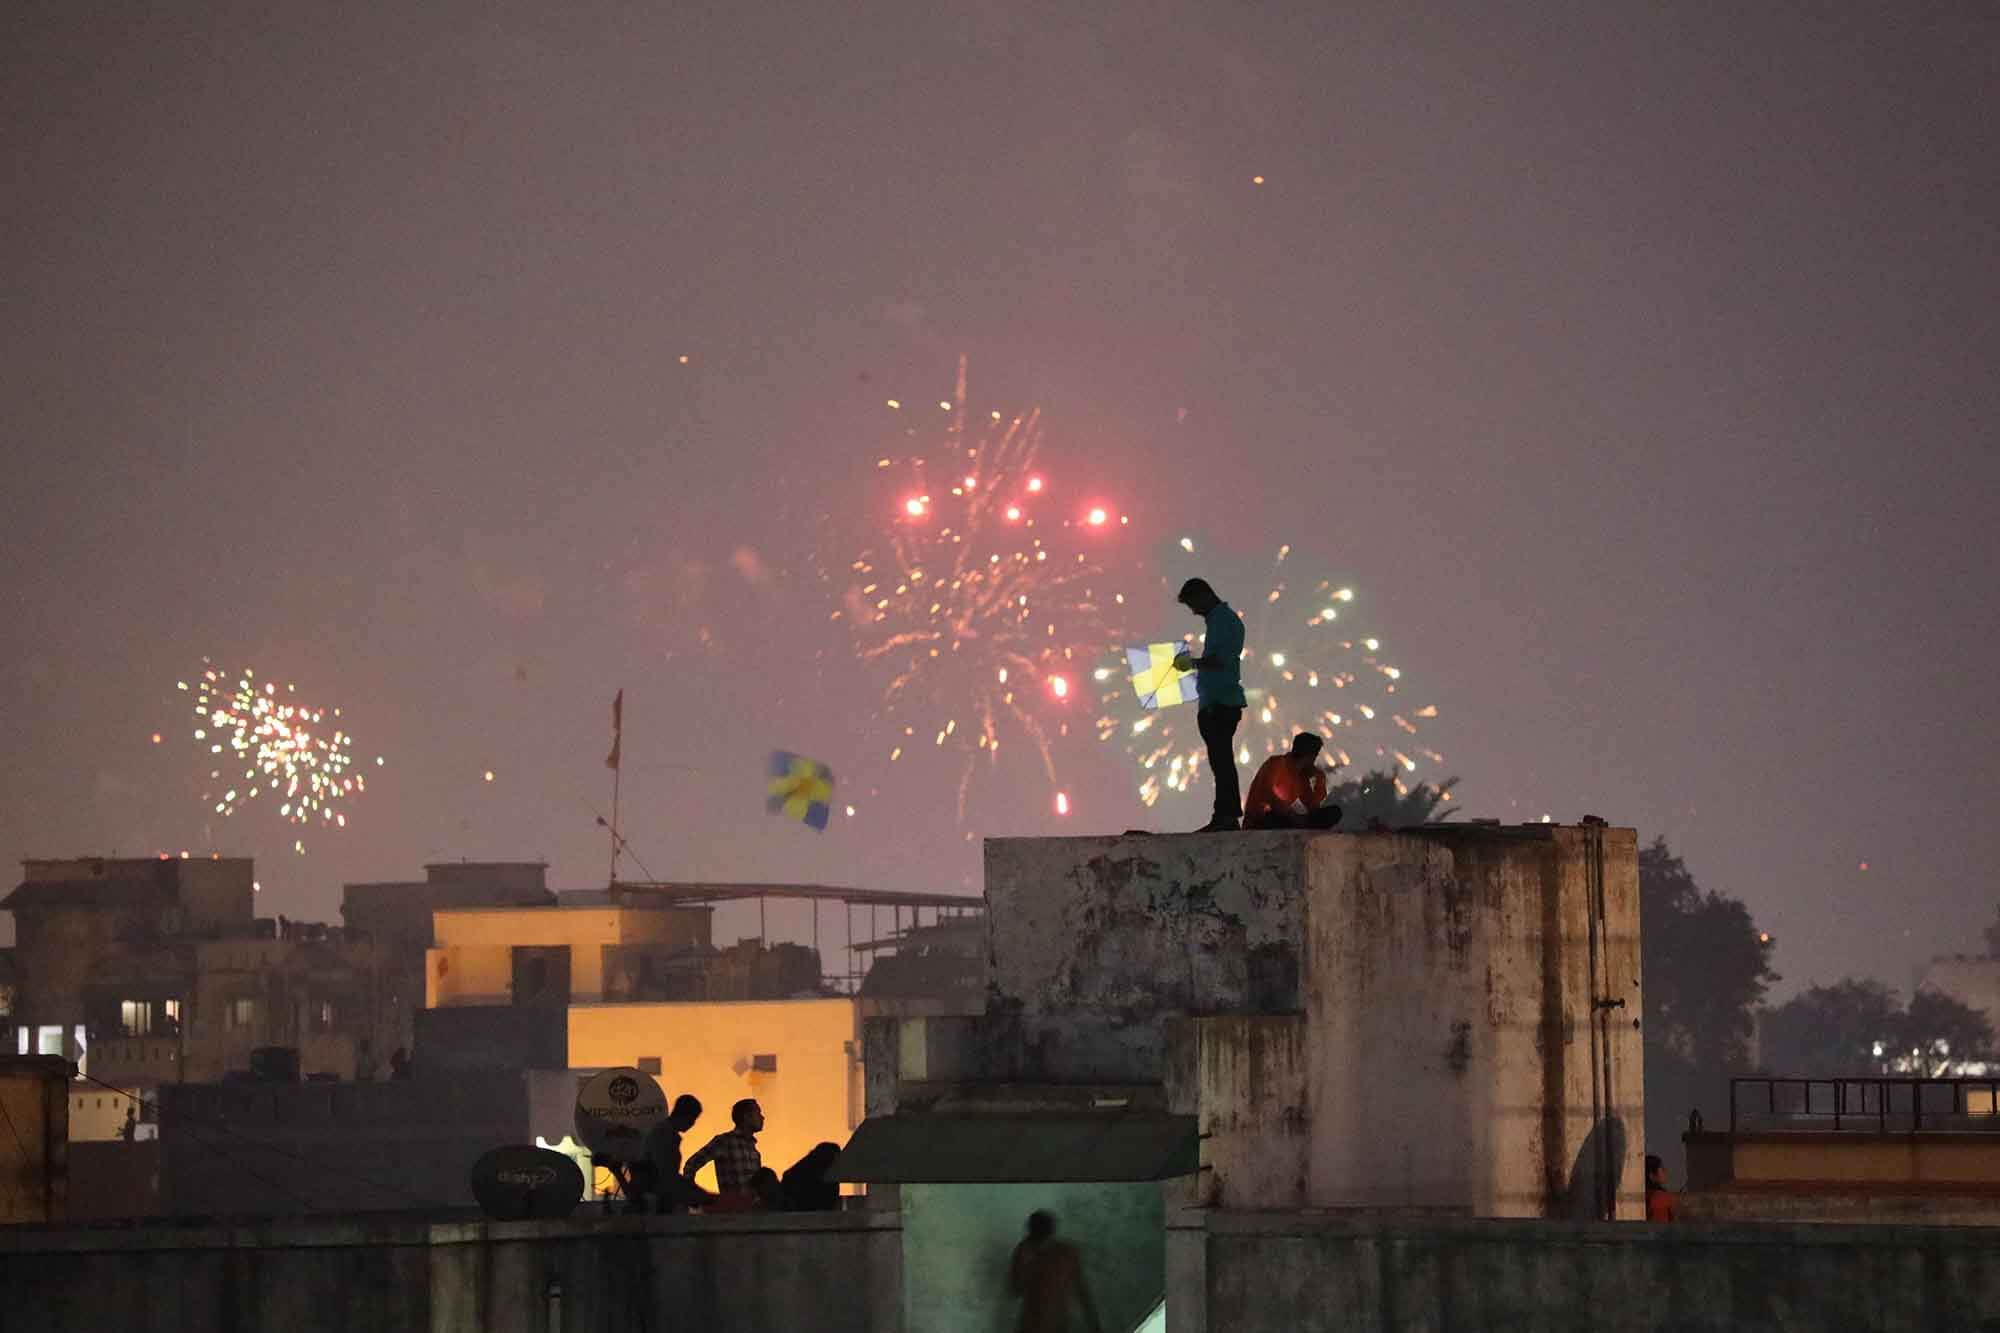 at dusk, men on top of buildings, putting together kites, with fireworks in the distance